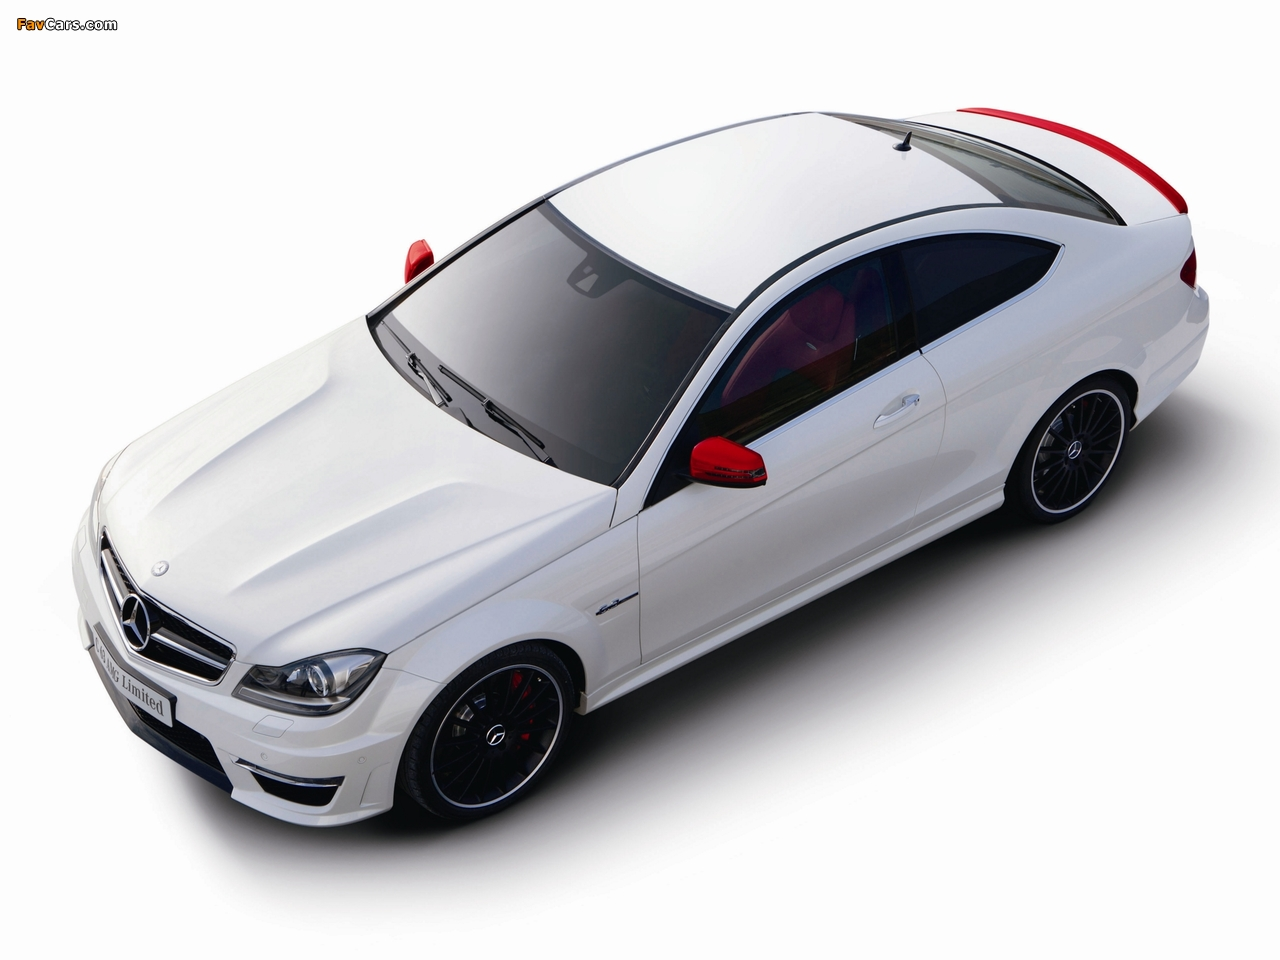 Mercedes-Benz C 63 AMG Limited Coupe (C204) 2013 photos (1280 x 960)